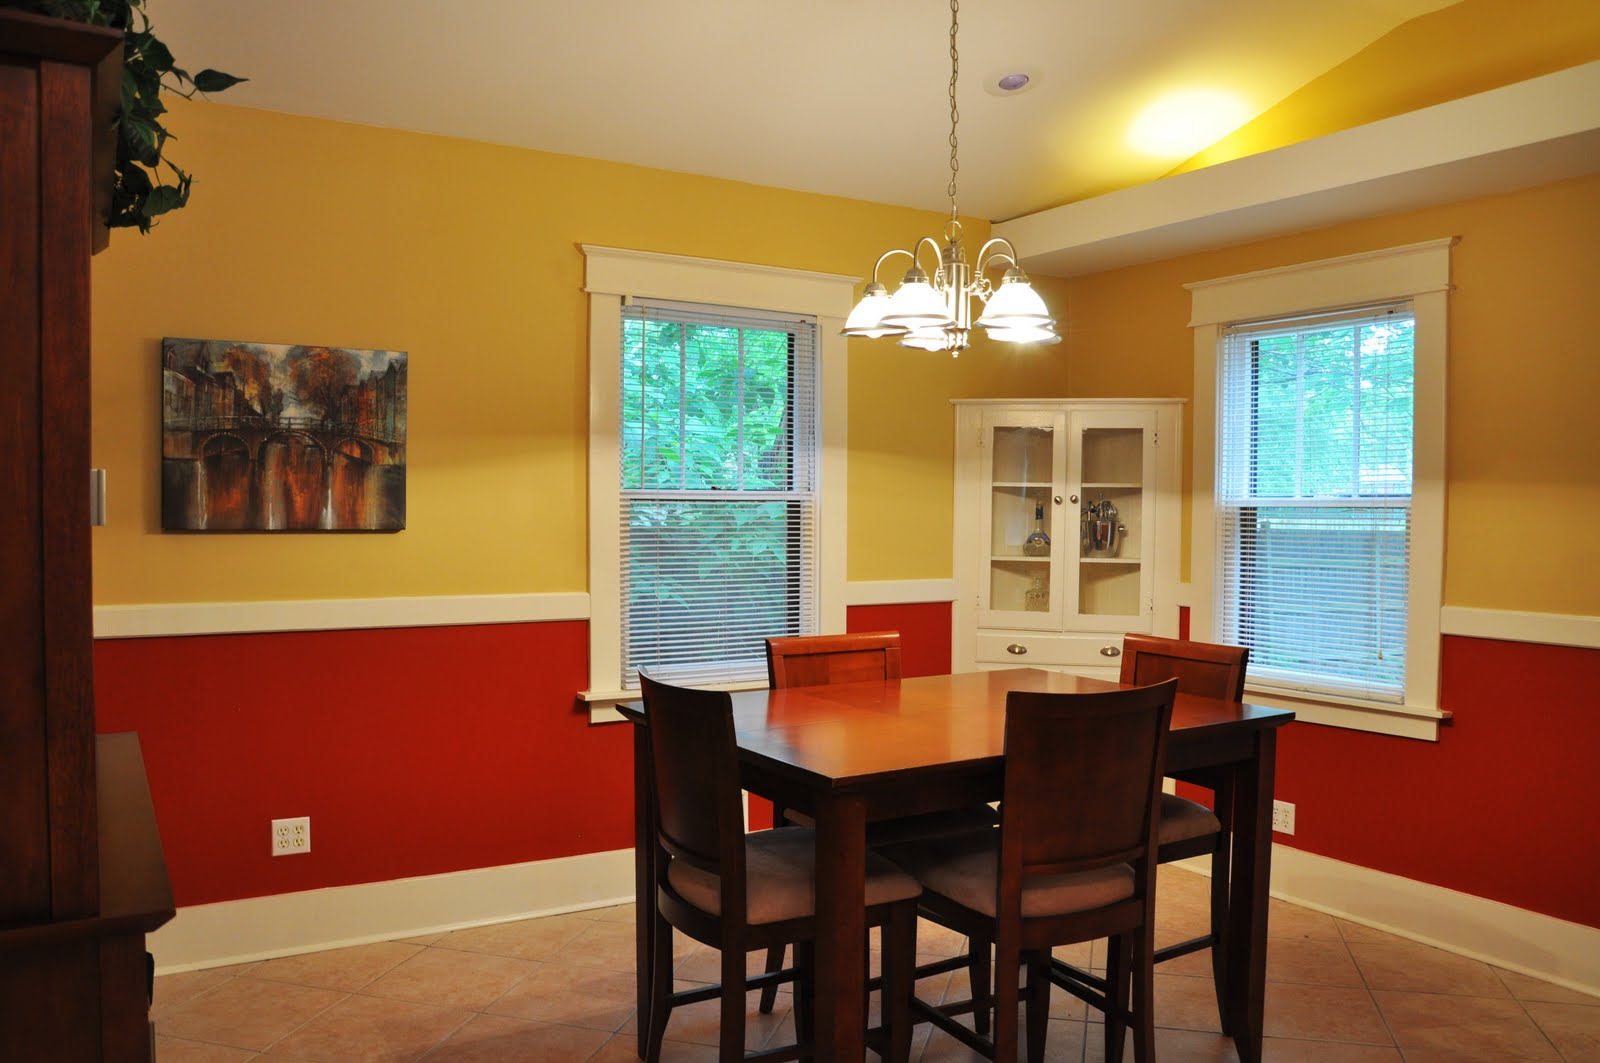 Red And White Dining Room Dody Decorating Ideas On Pinterest Yellow Dining Room